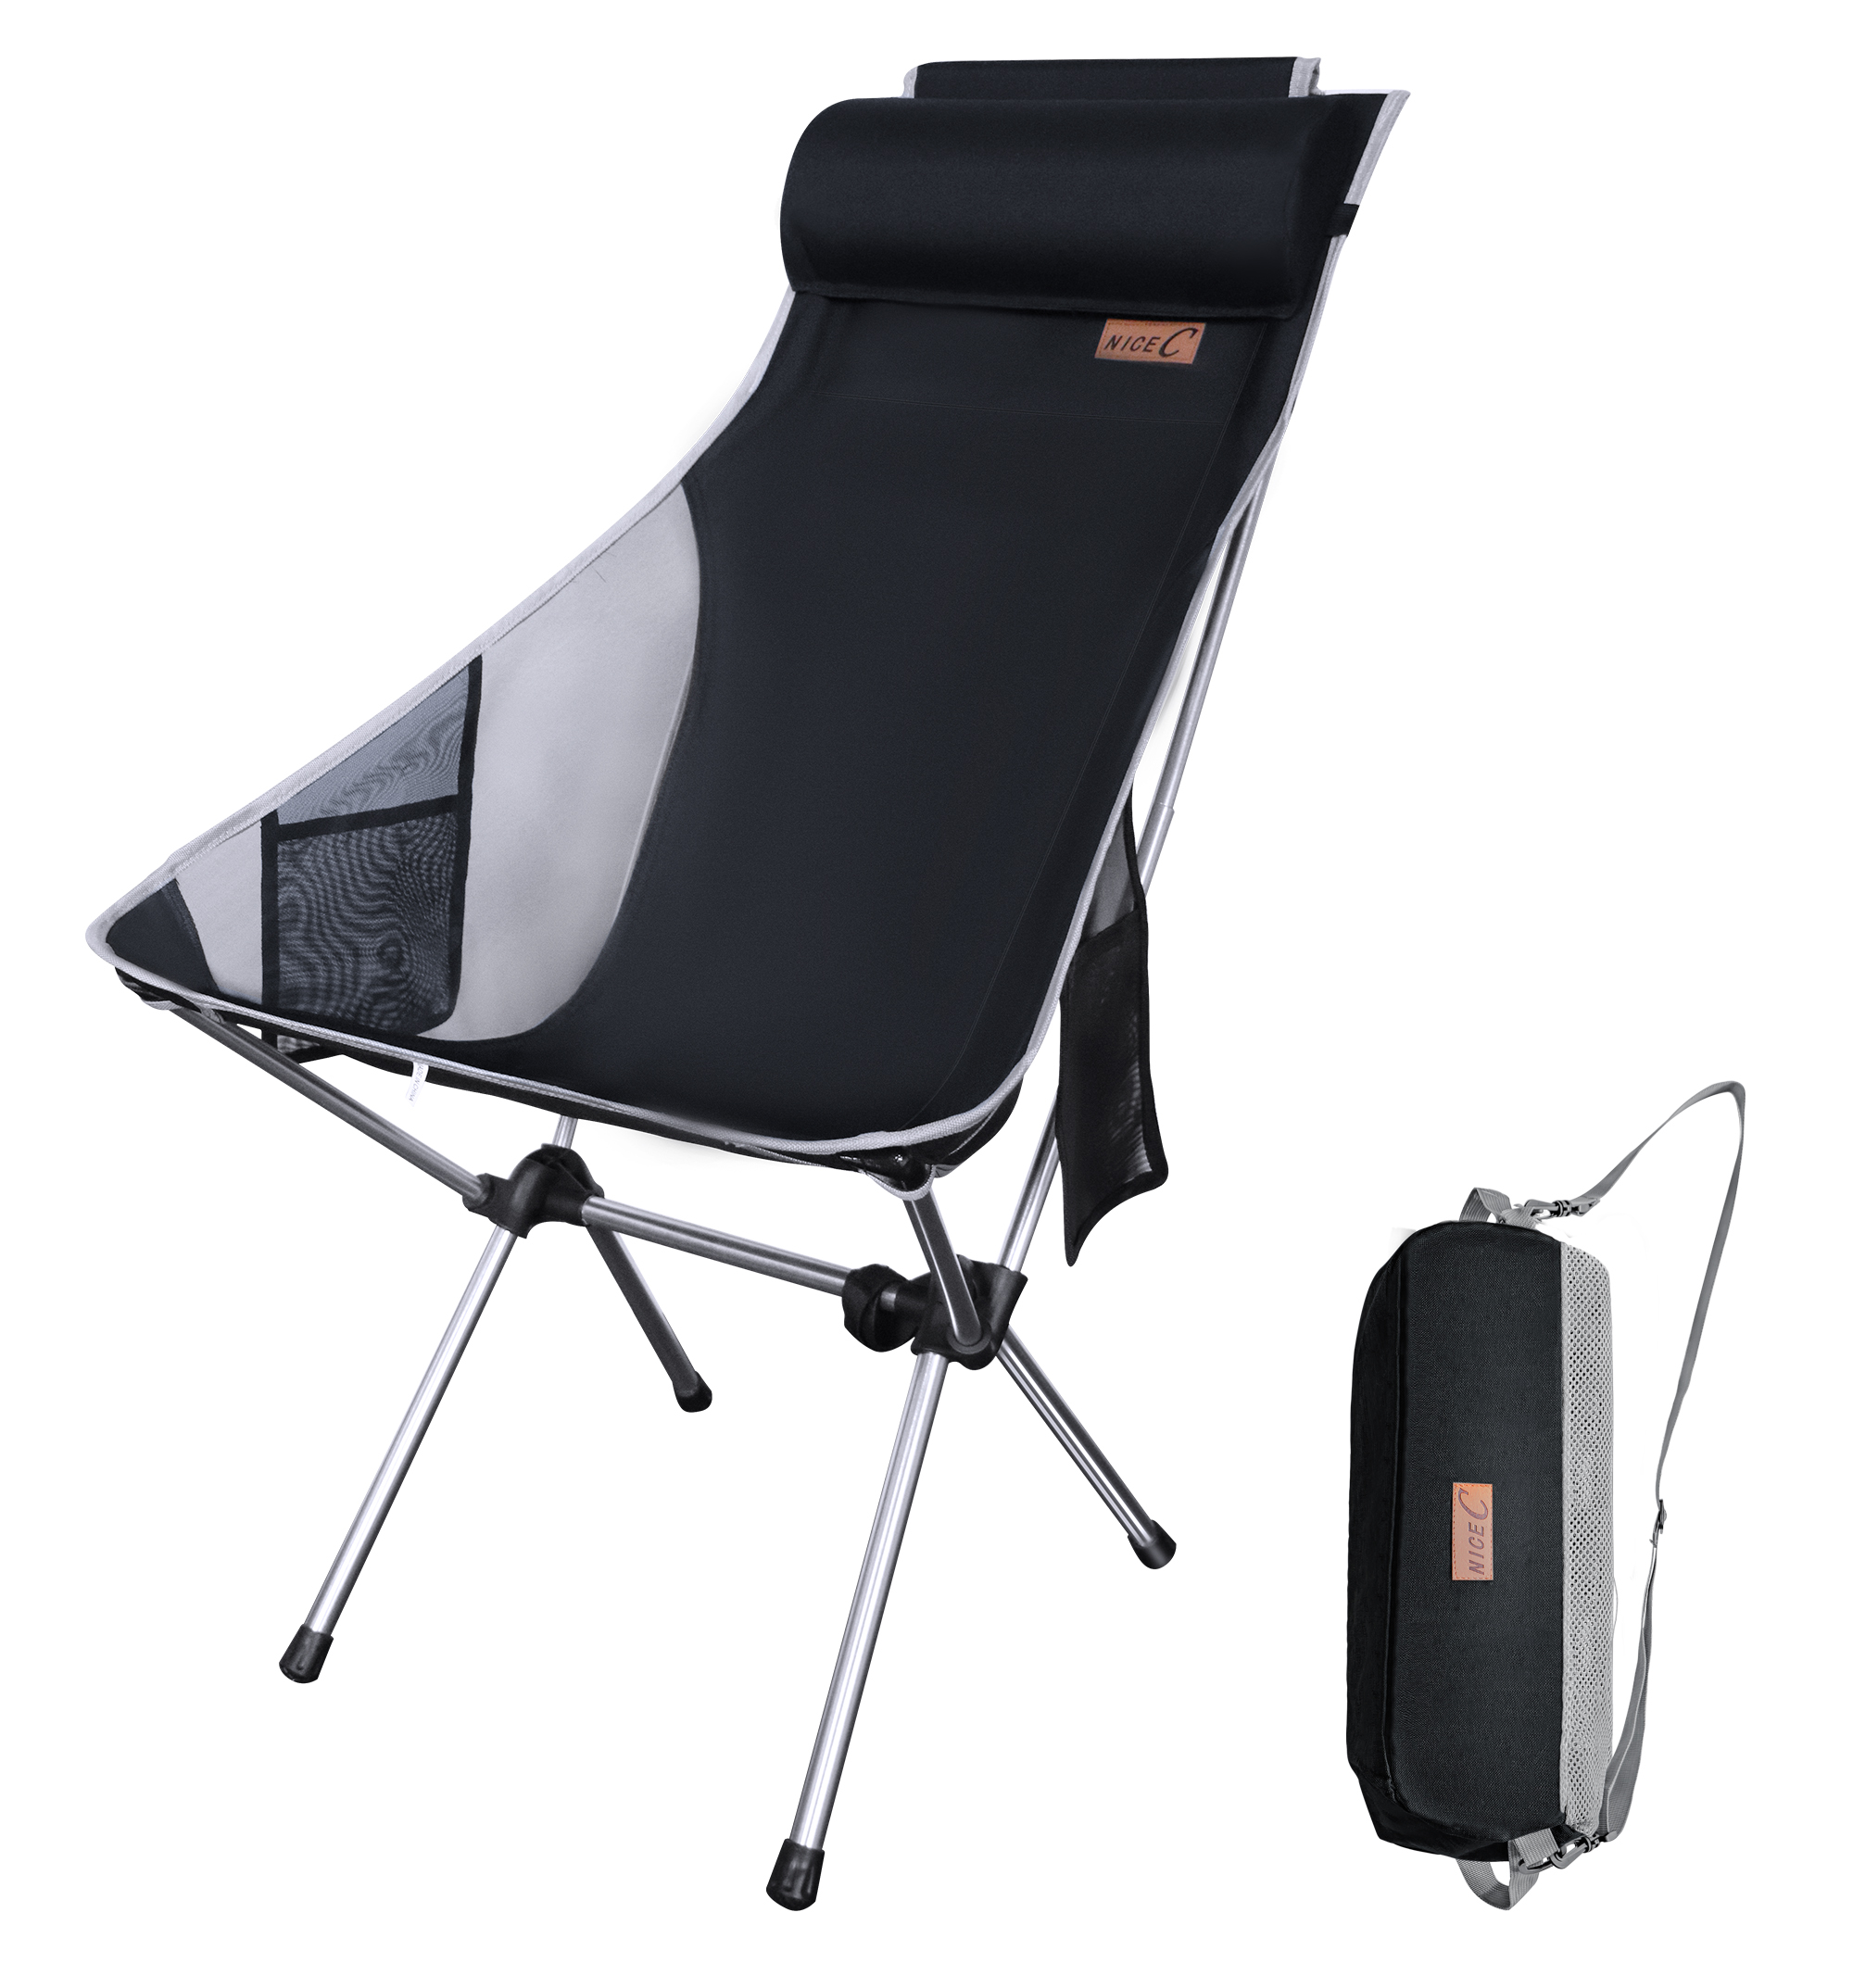 Camping Ultralight Portable Folding Backpacking Camping Chair Pillow Backpacking